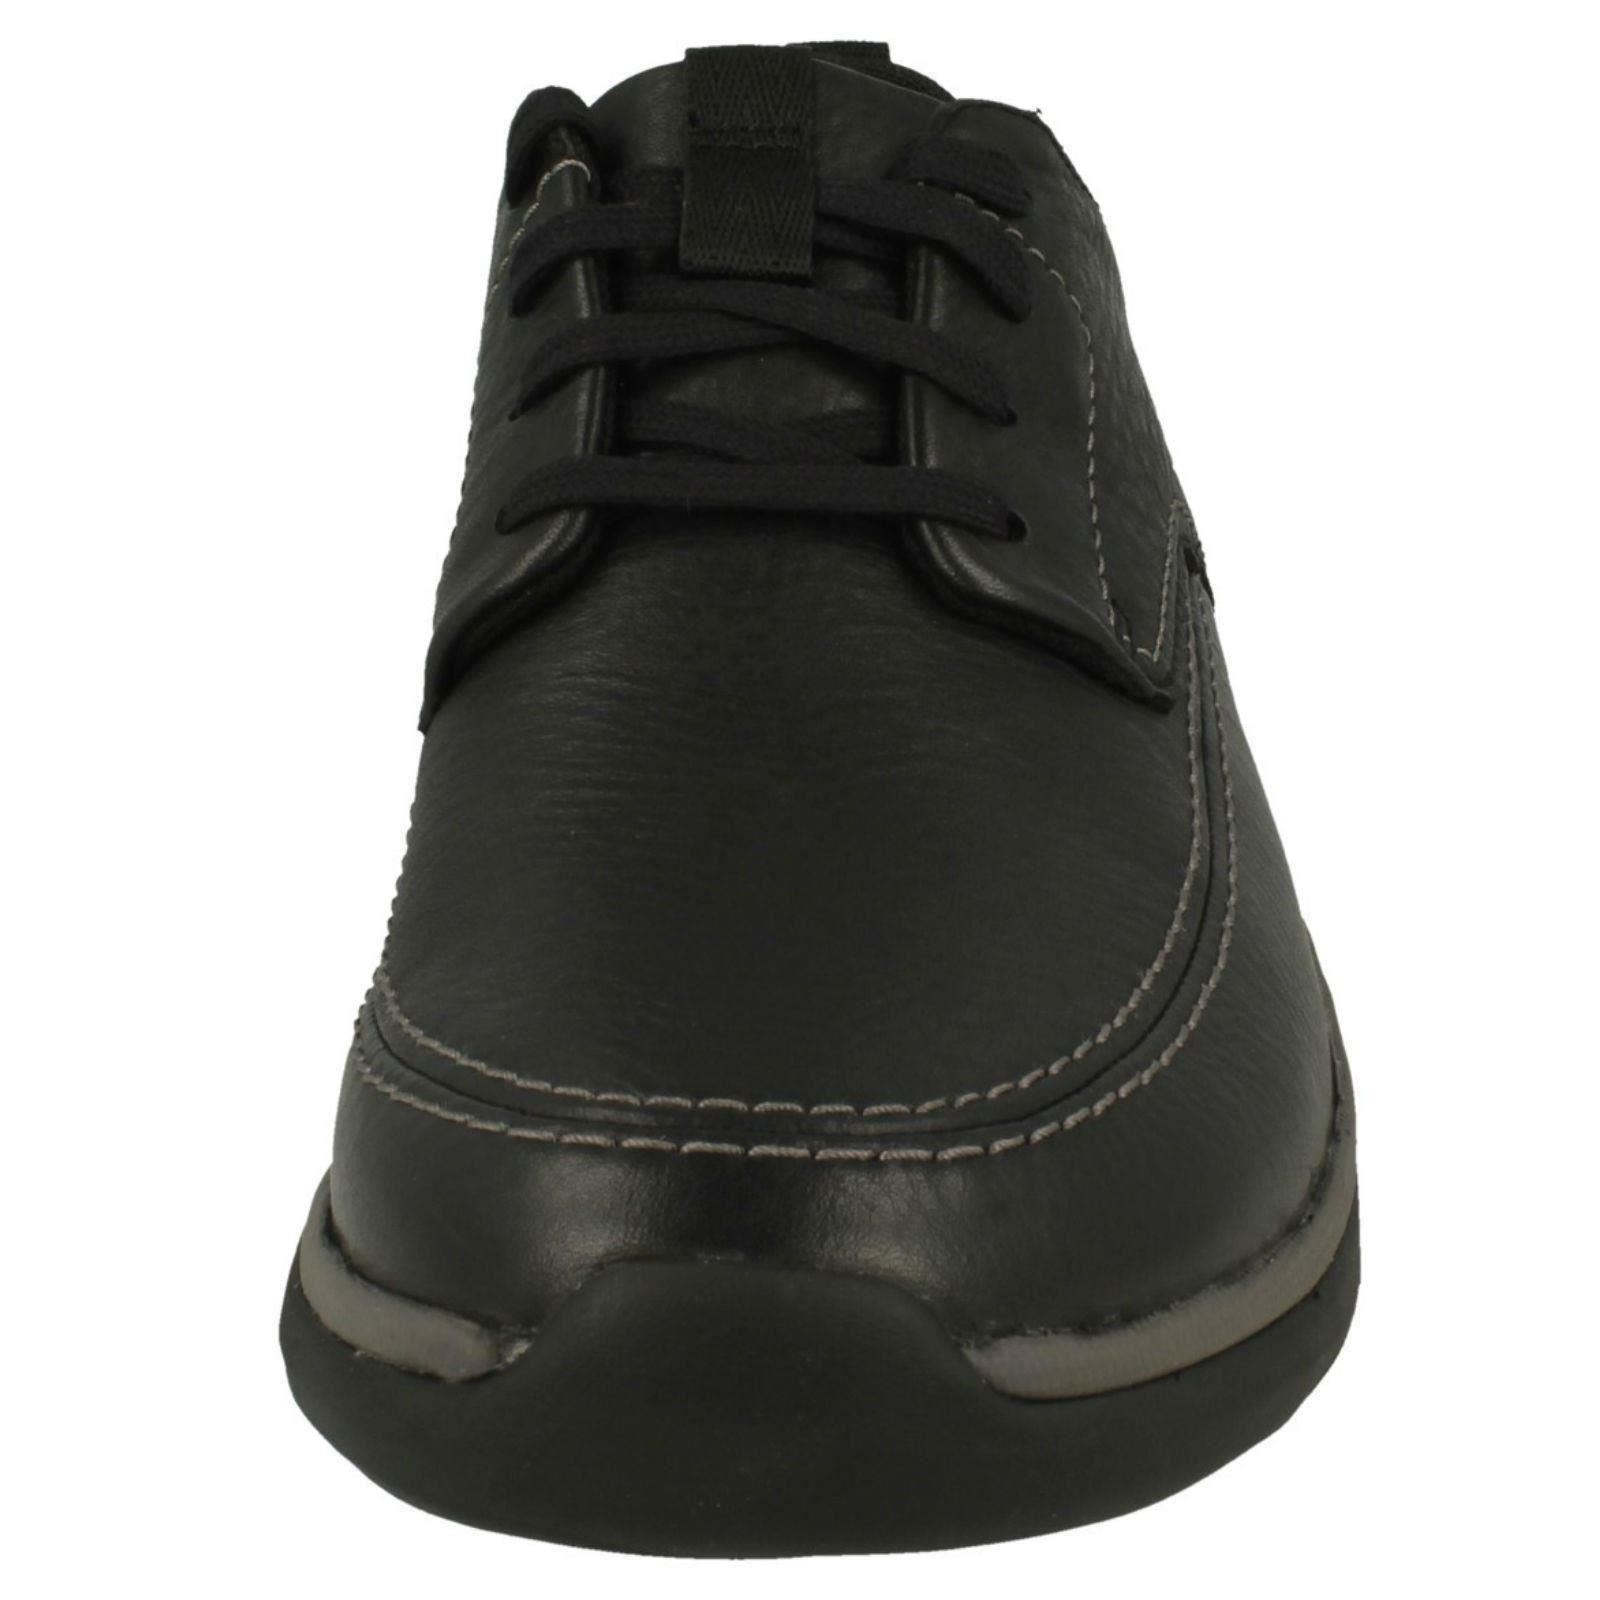 Mens-Unstructured-by-Clarks-Lace-Up-Shoes-039-Garratt-Street-039 thumbnail 8